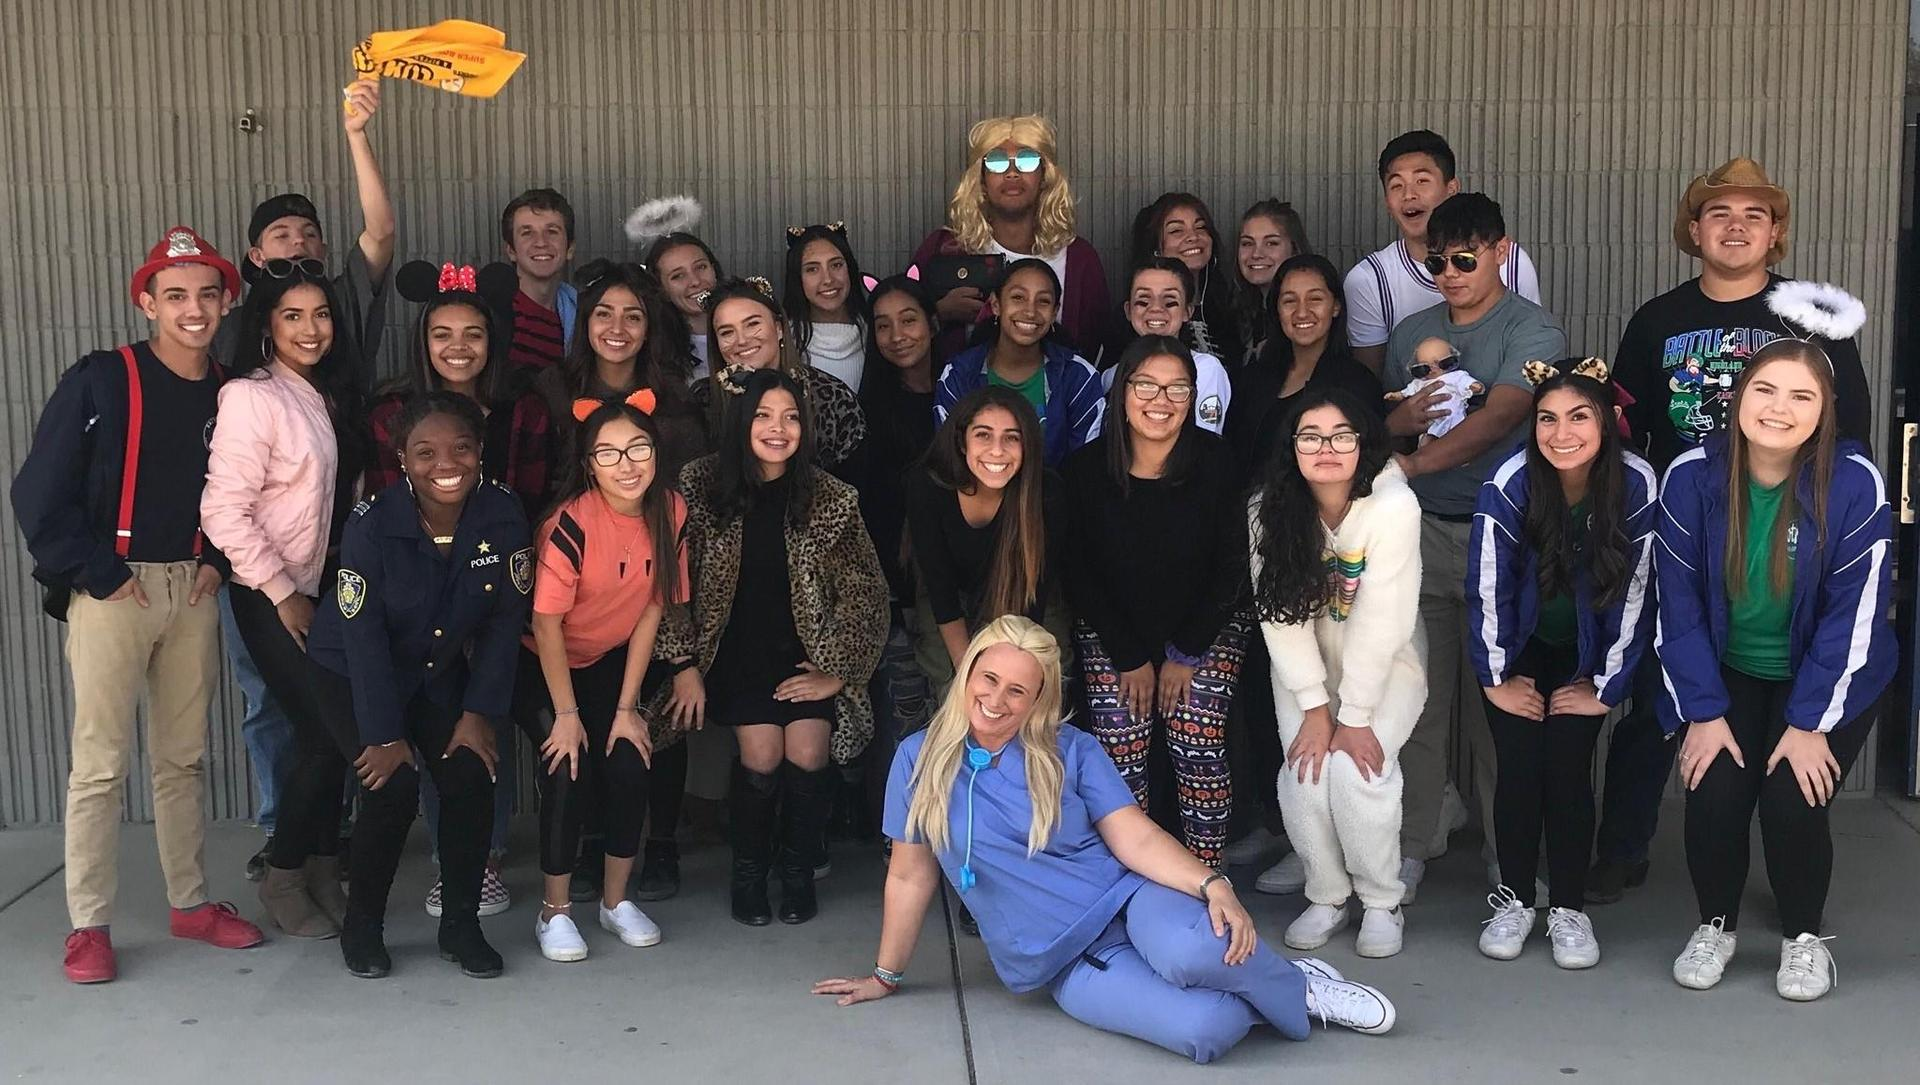 ASB - Clowning around for Halloween 2019